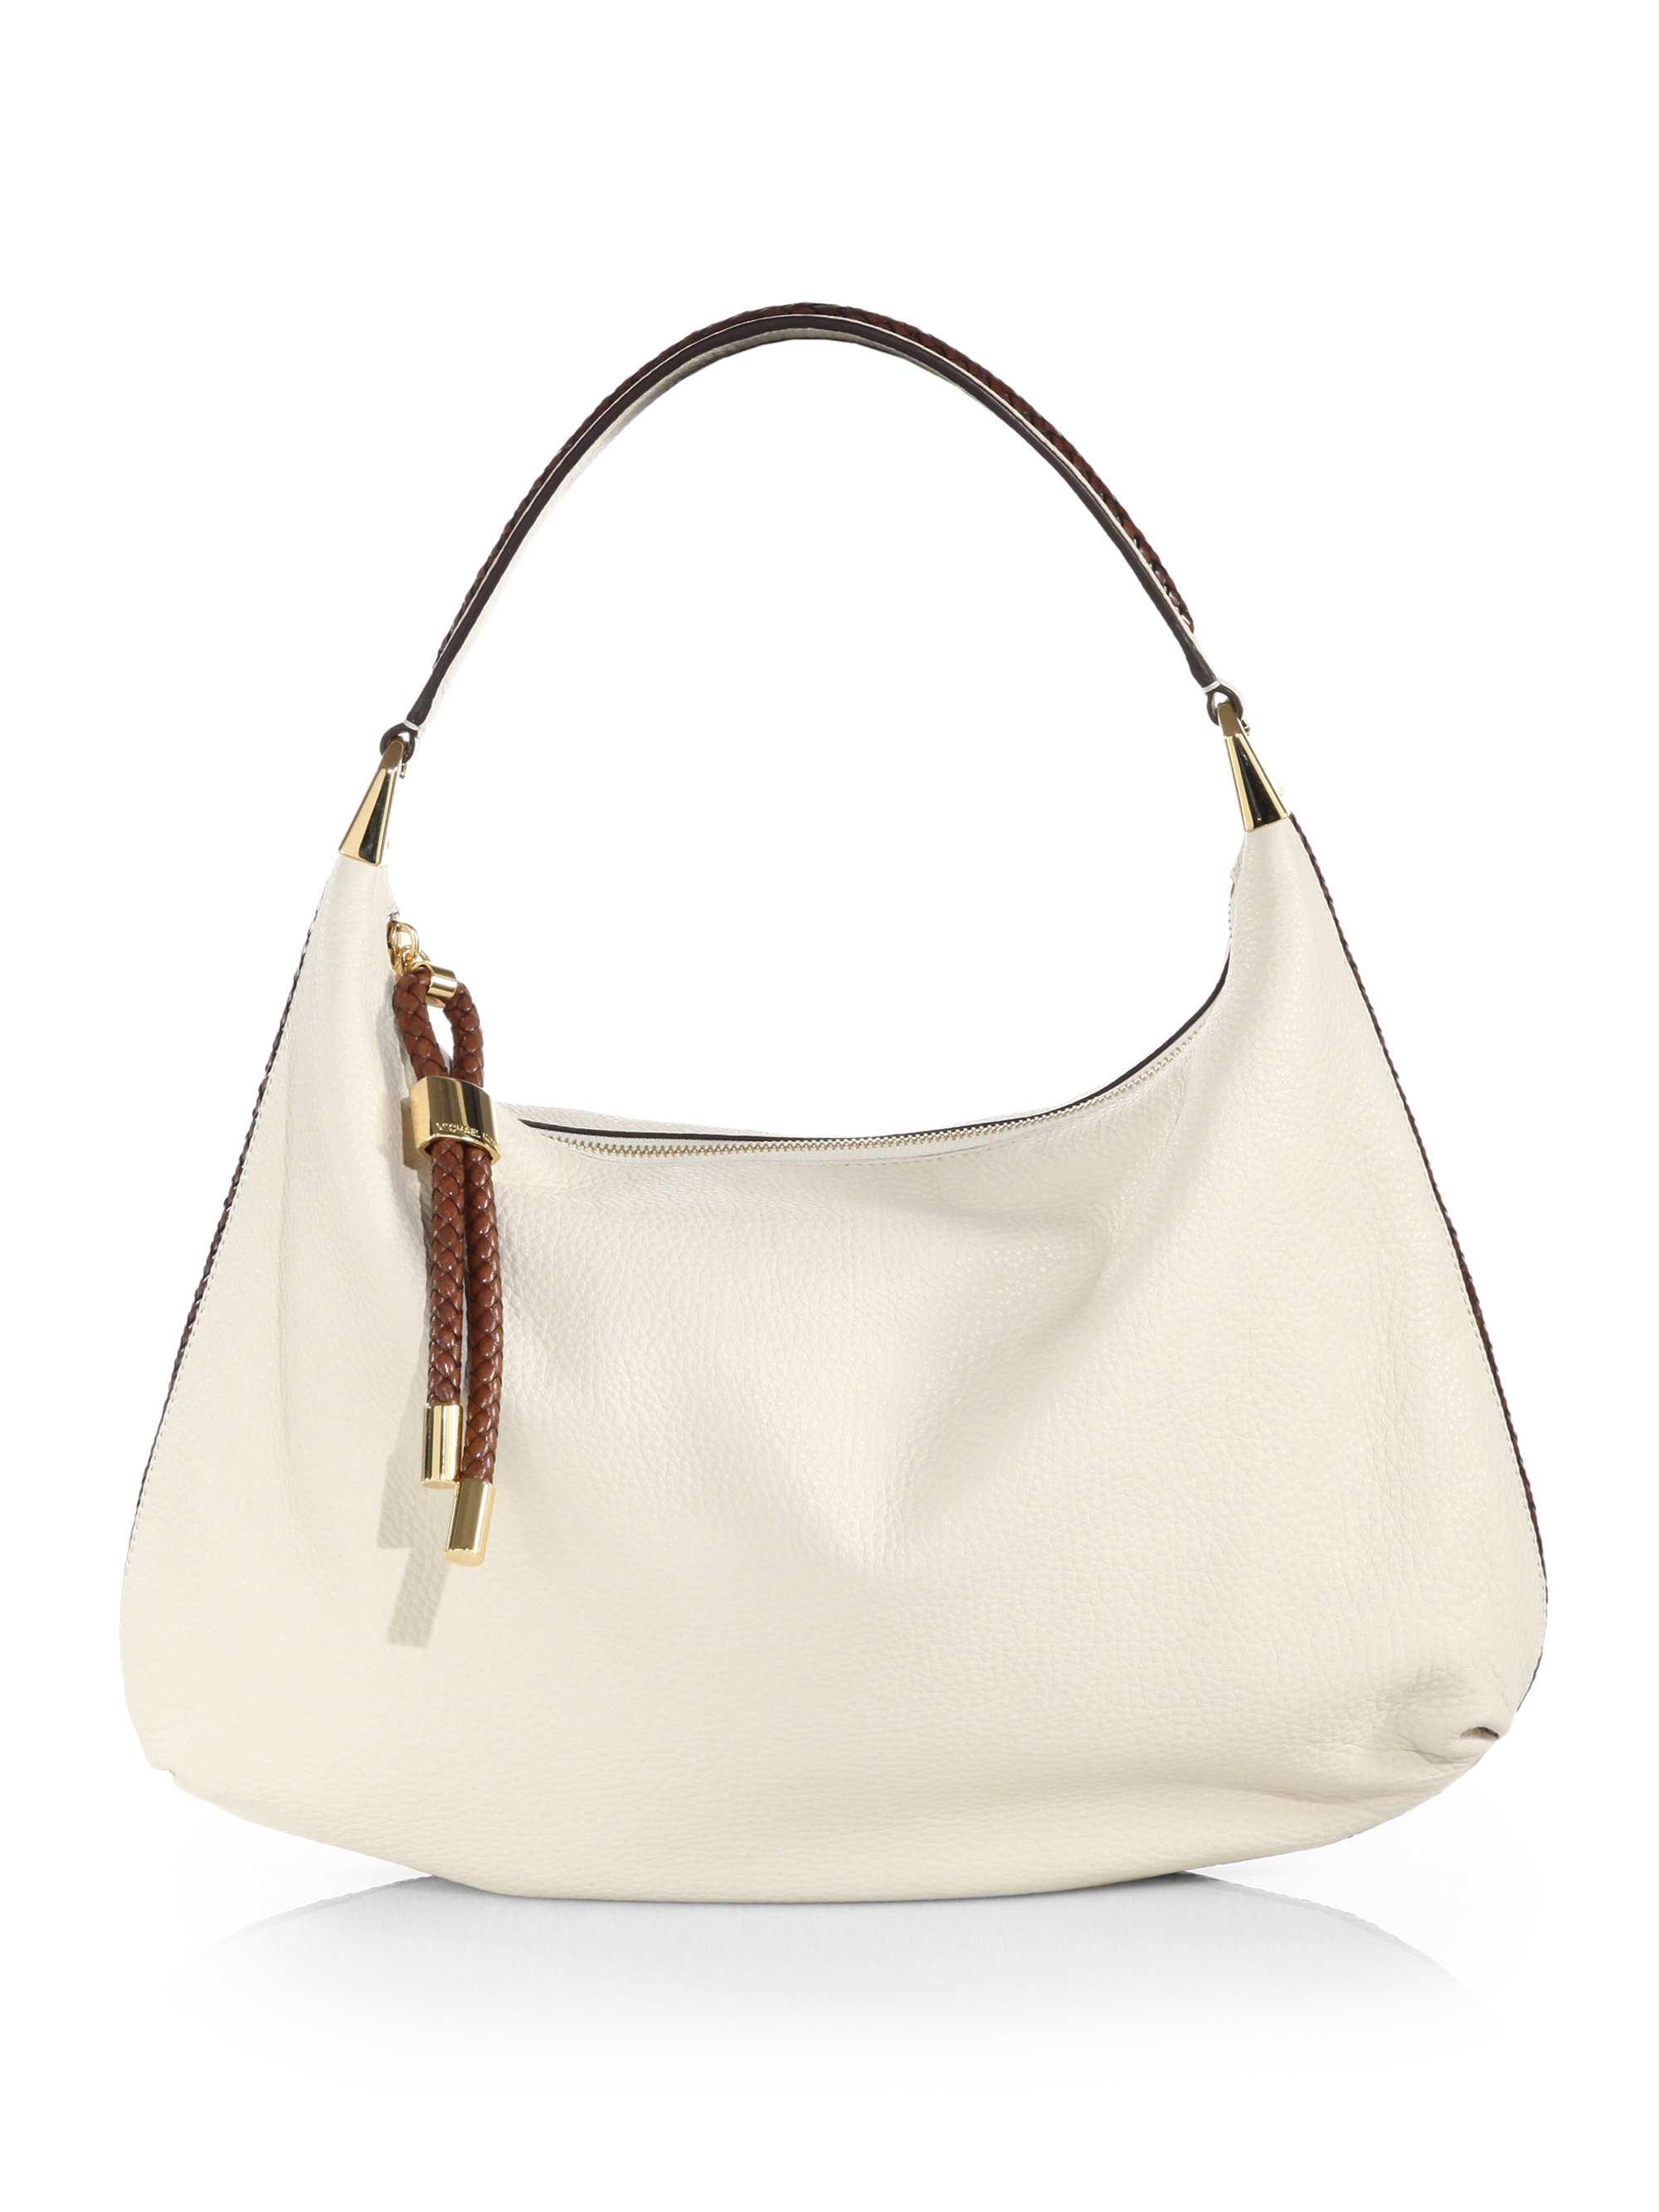 Michael kors Skorpios Large Braid-Trimmed Hobo Bag in White | Lyst